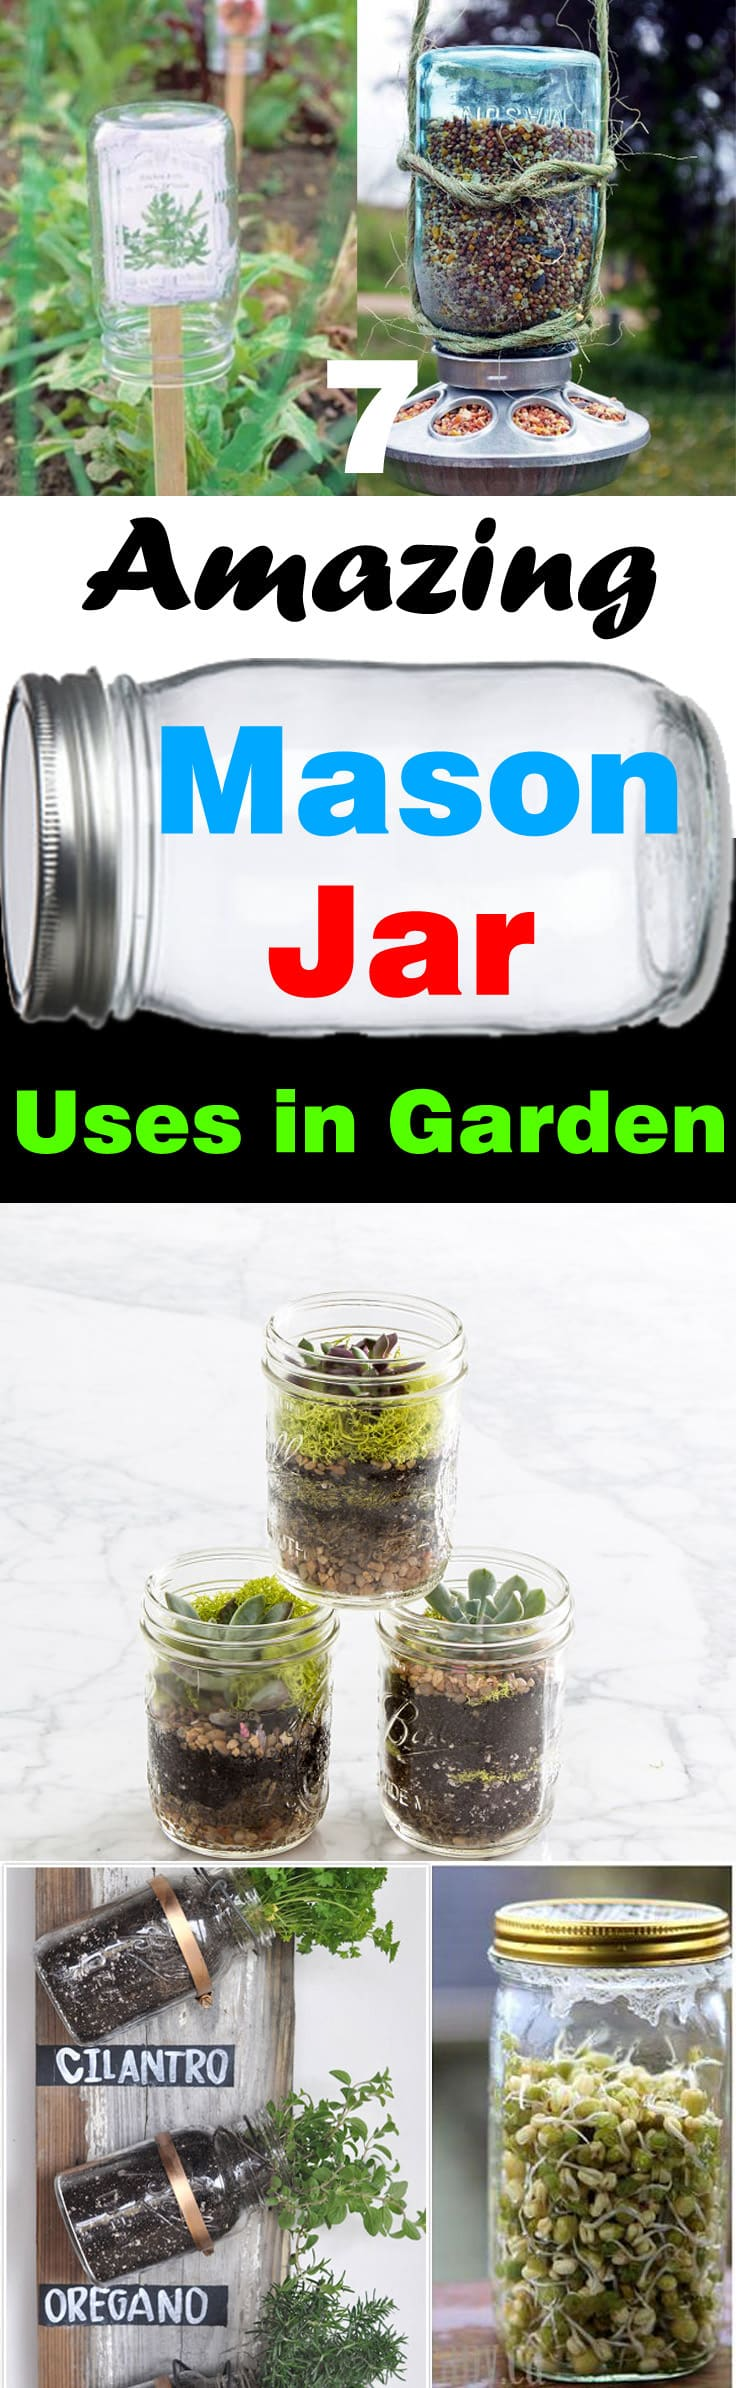 Have a collection of unused mason jars? Don't throw them! Here're 7 DIY Mason jar uses in garden you can look at for inspiration.